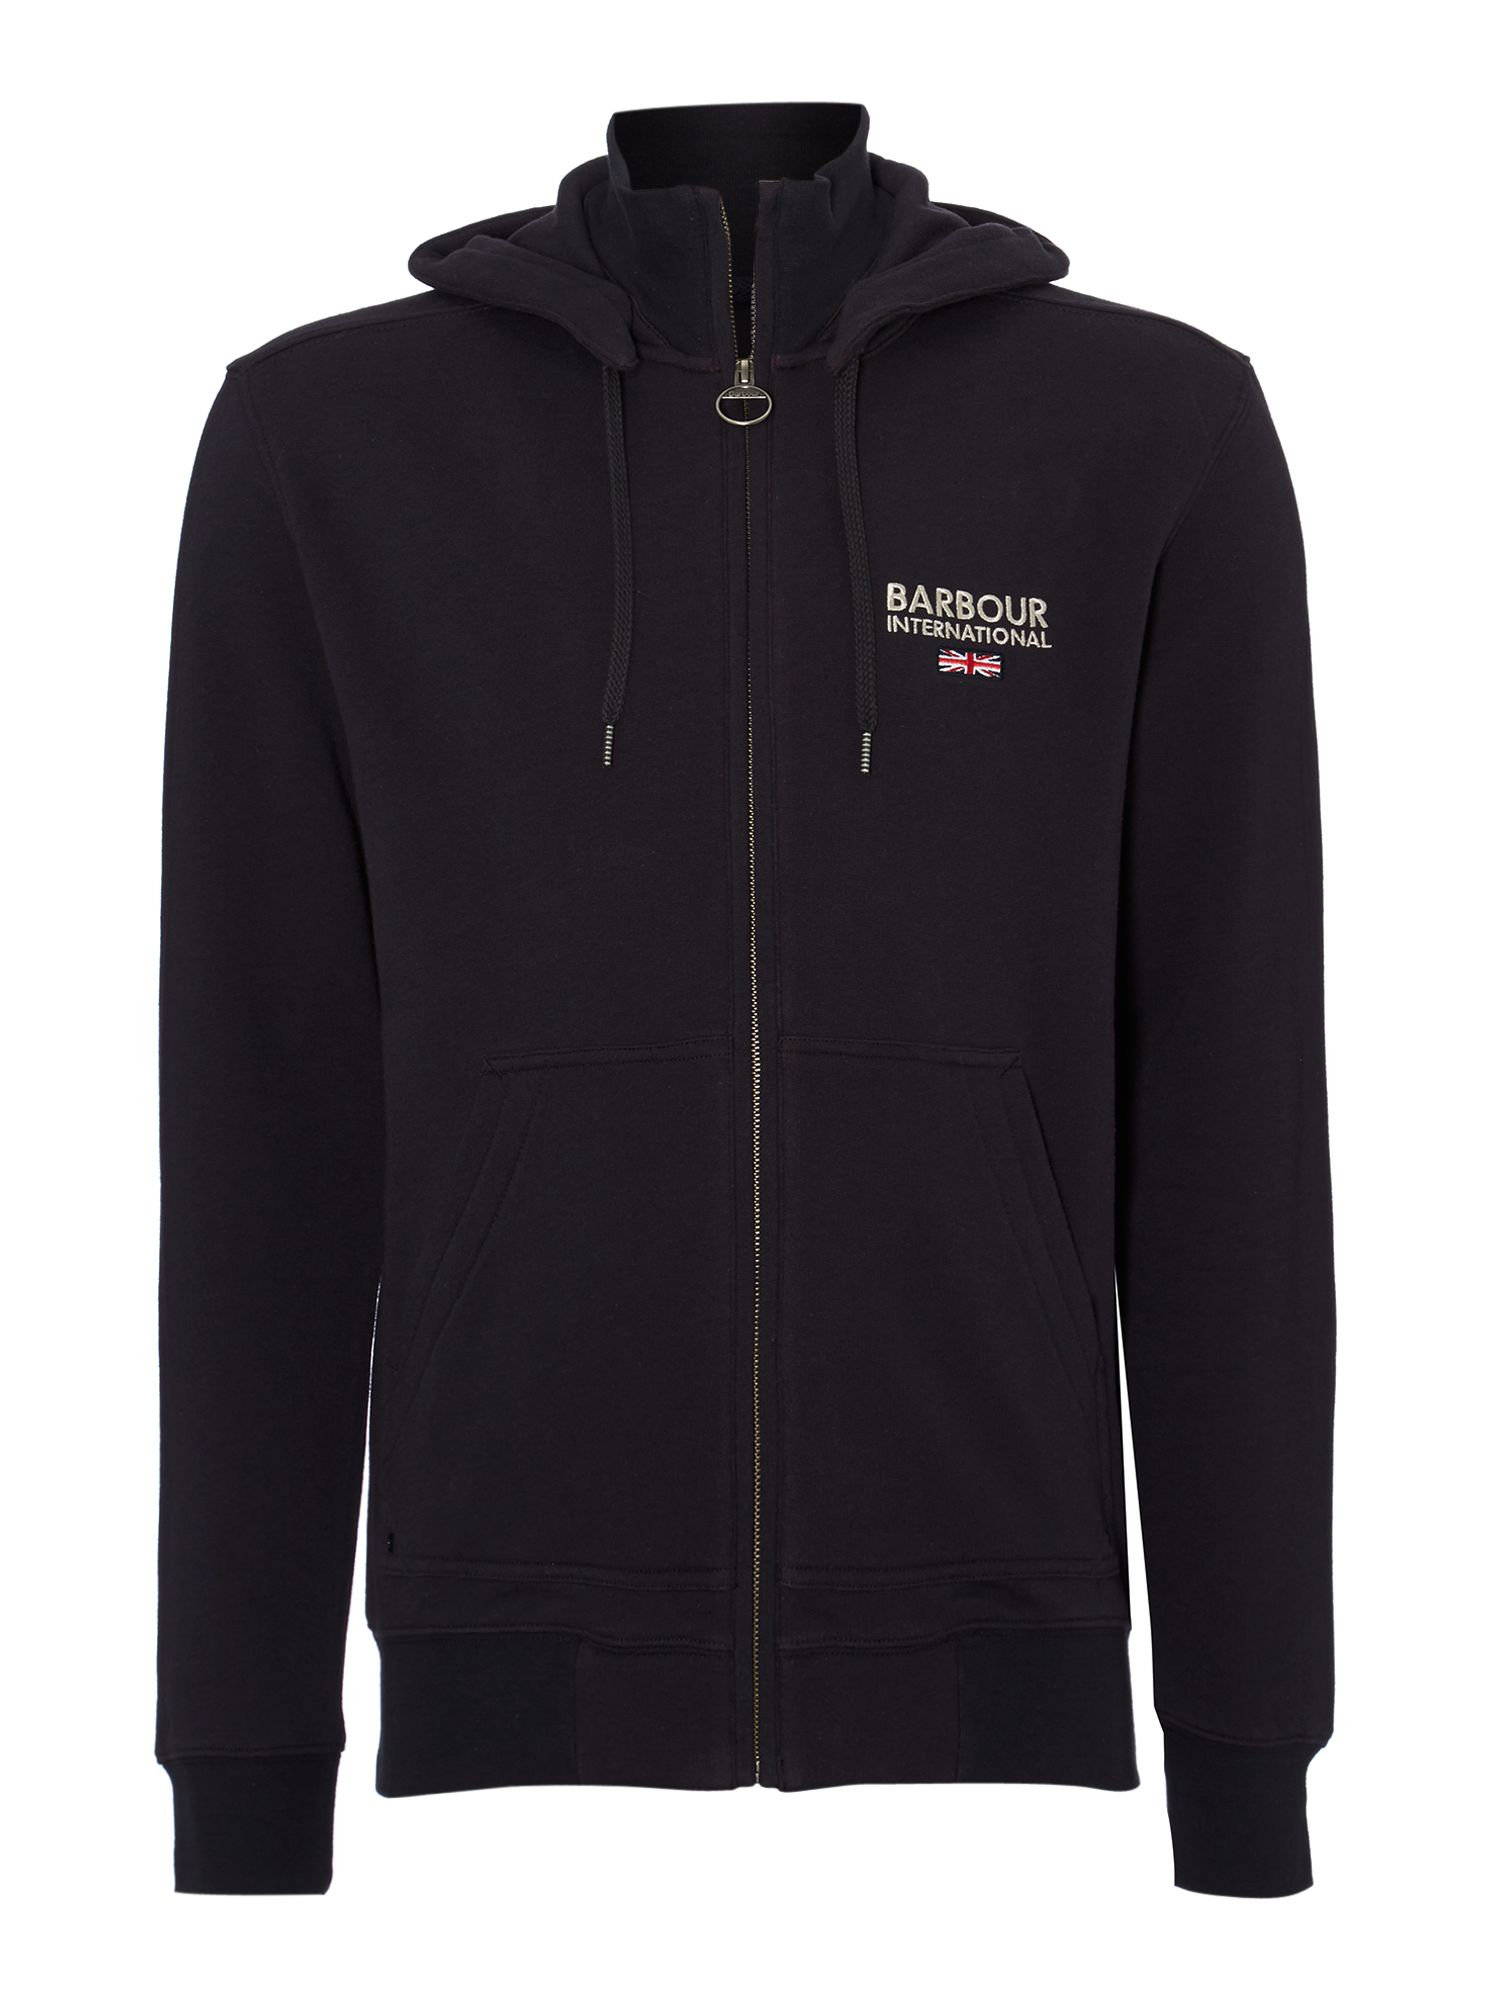 Cylinder zip through hooded sweatshirt